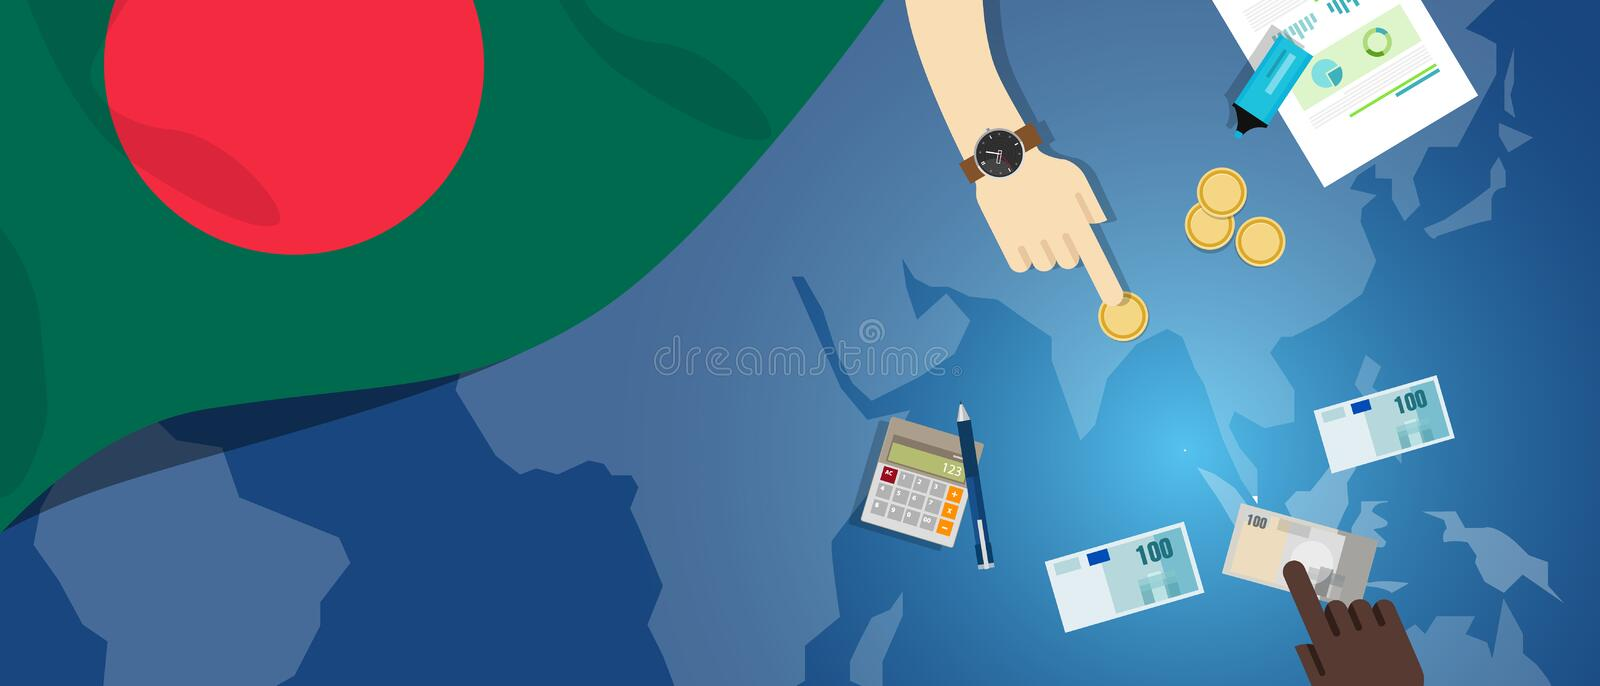 Bangladesh Daka economy fiscal money trade concept illustration of financial banking budget with flag map and currency. Vector royalty free illustration